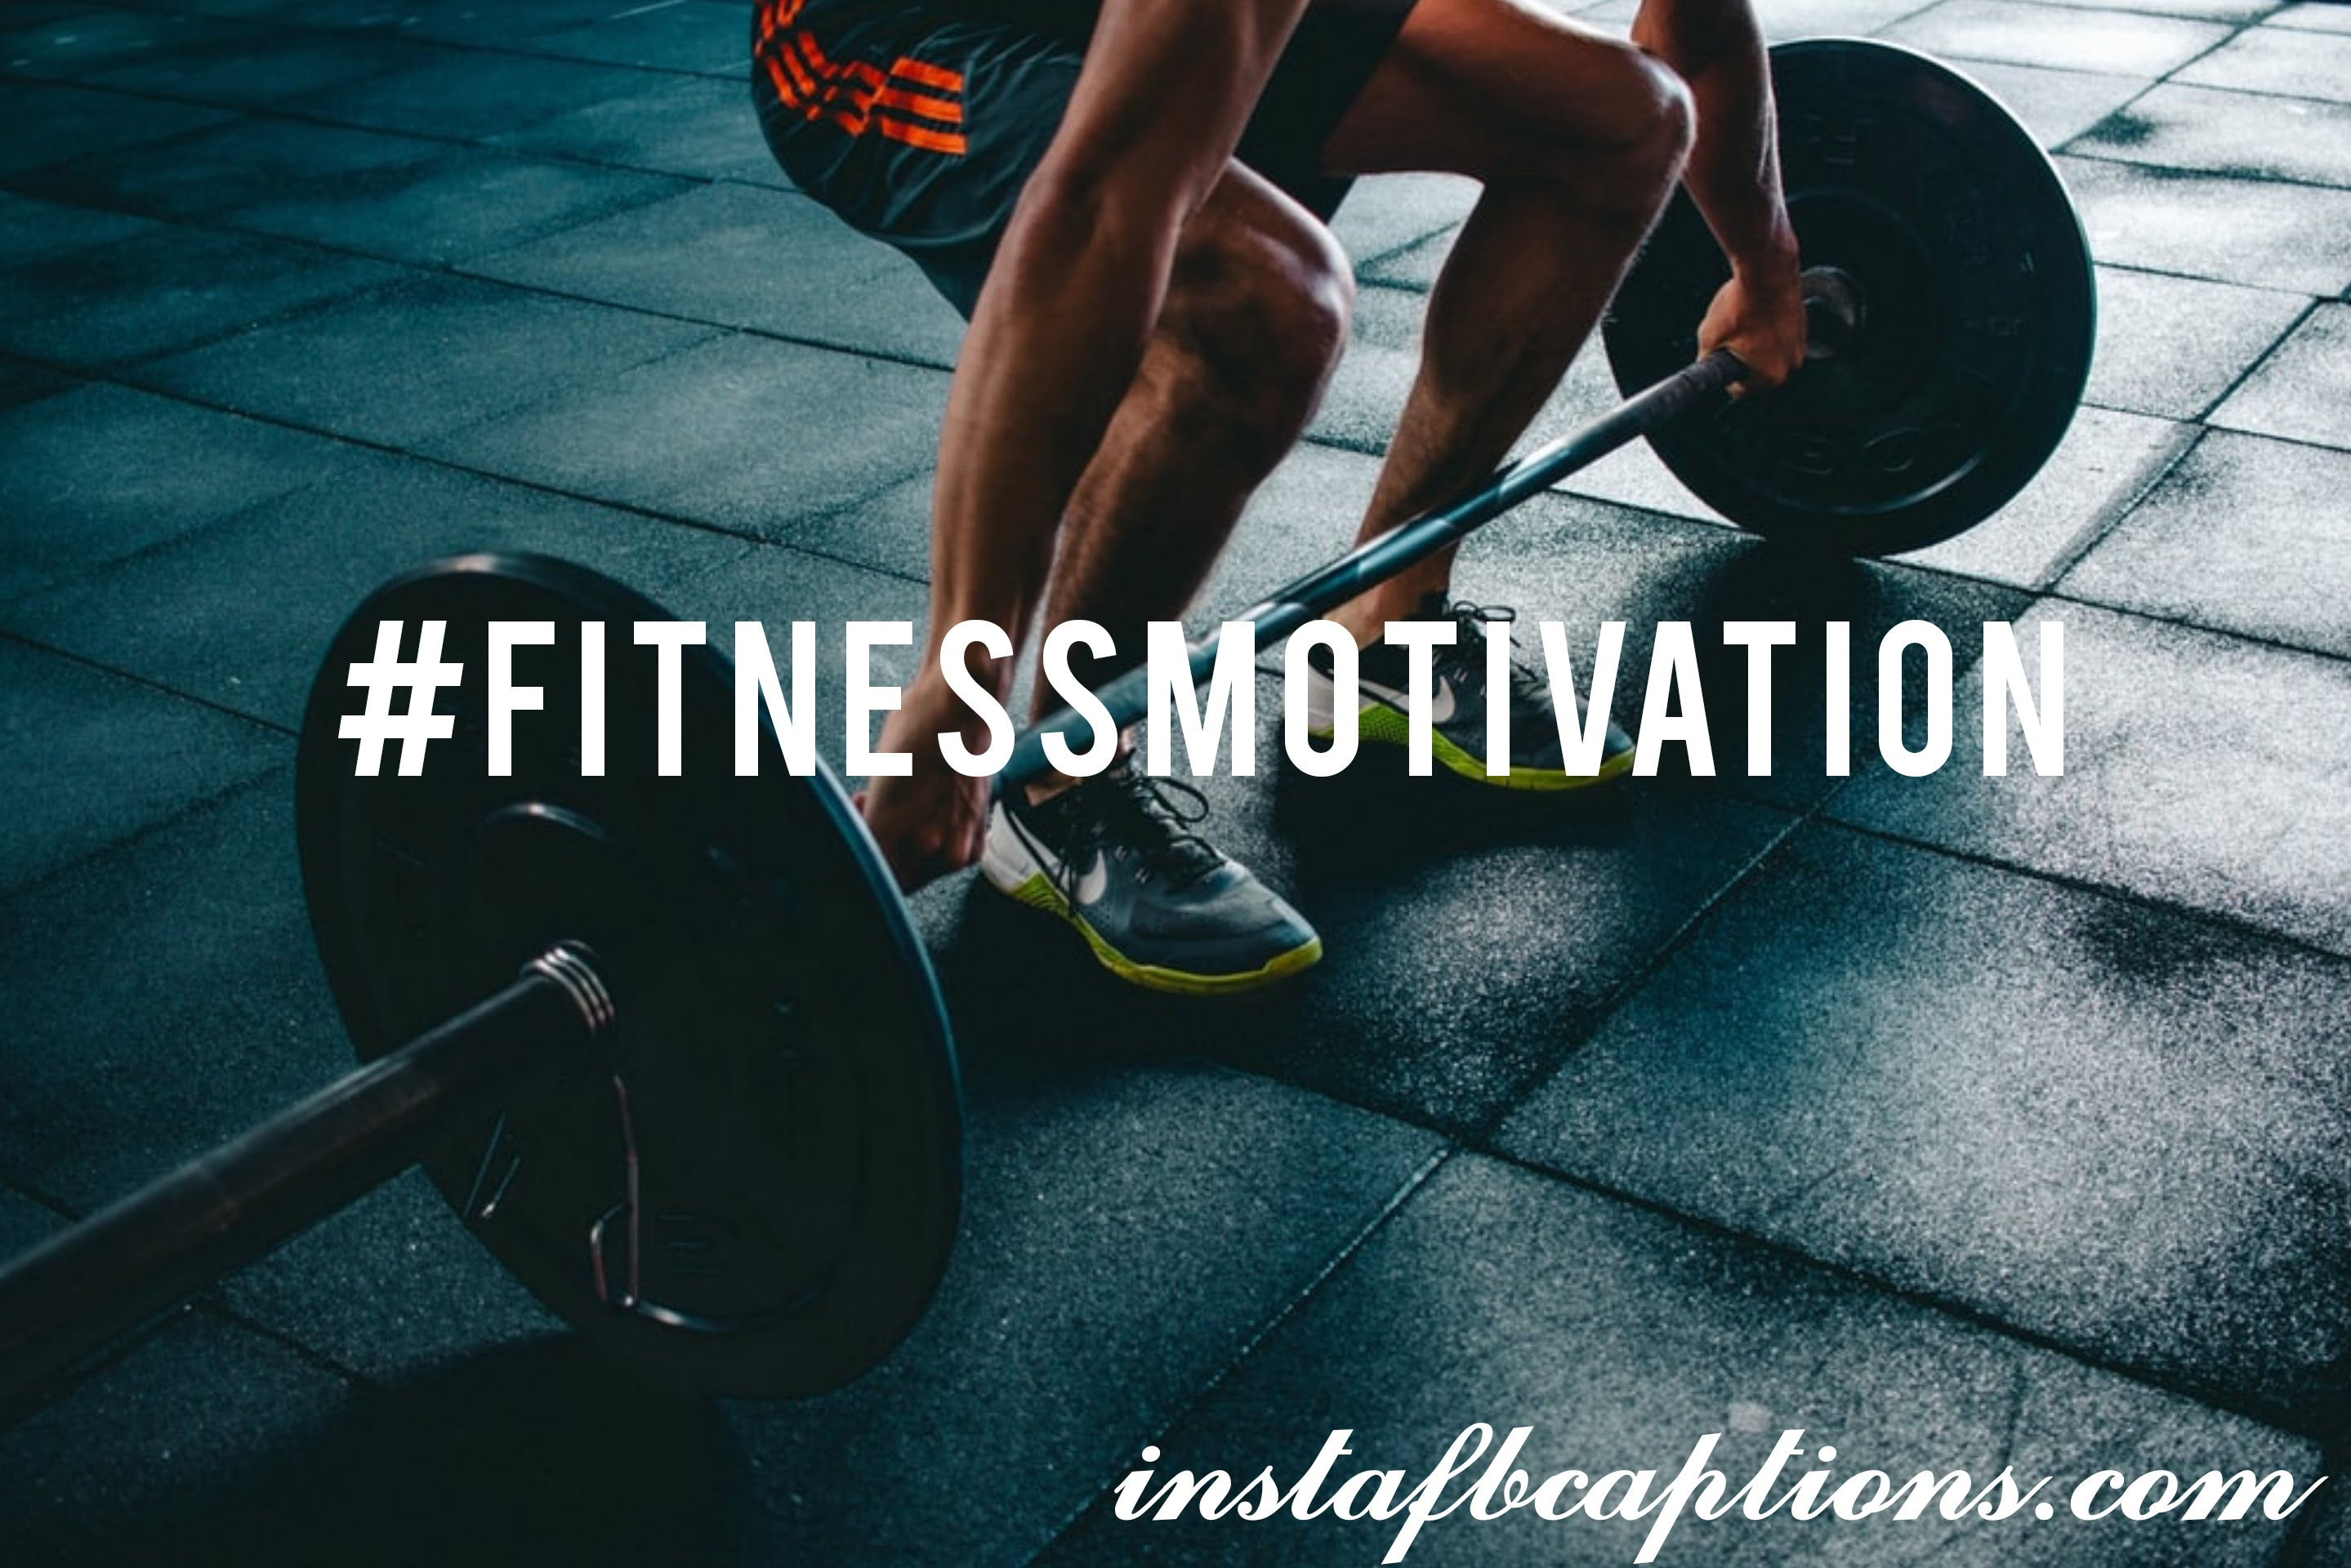 Fitness Hashtags  - Fitness Hashtags - 110+ GYM & WORKOUT Instagram Captions 2021